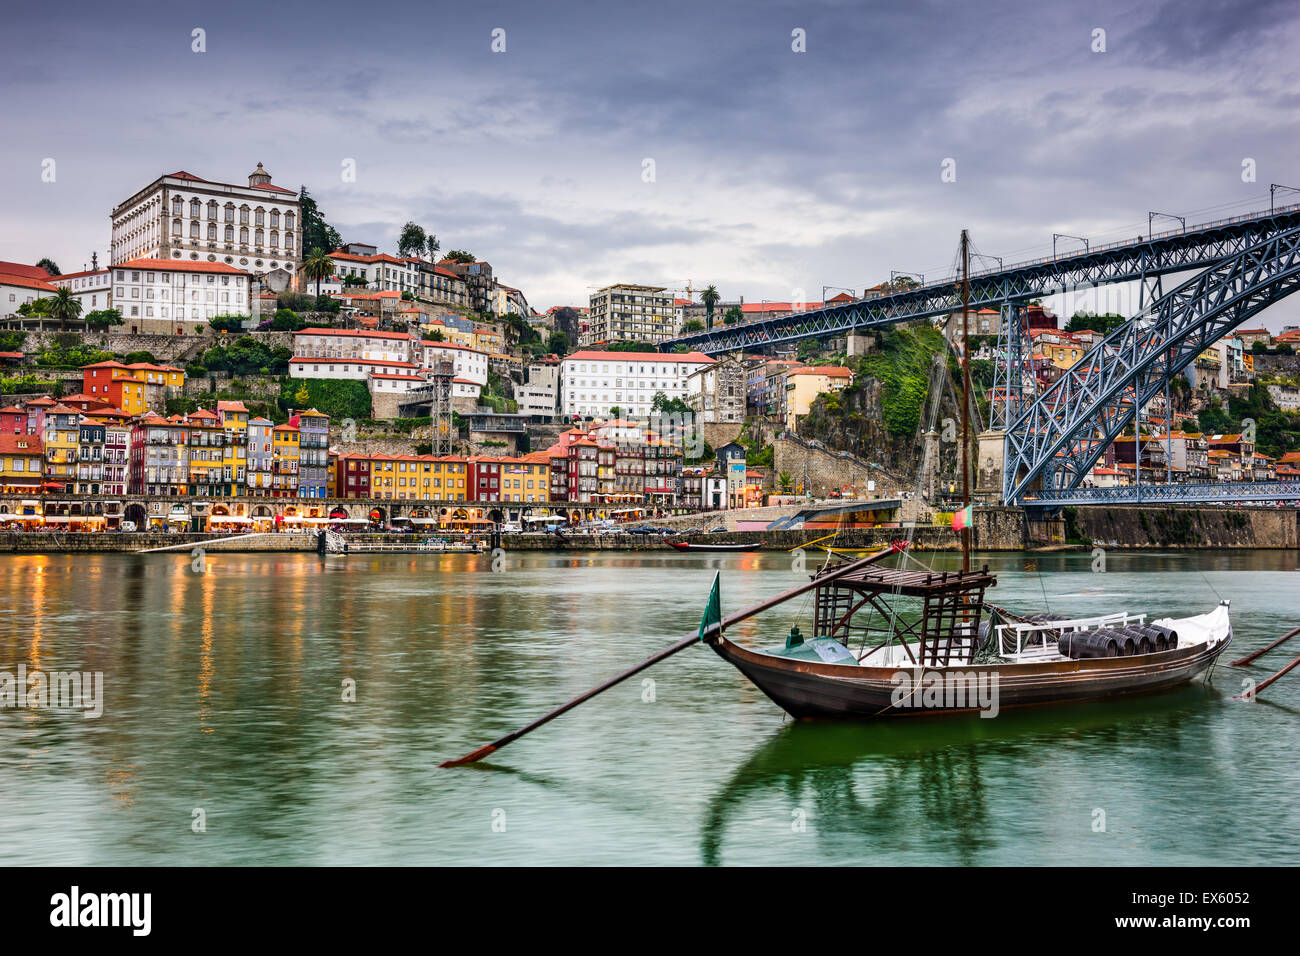 Porto, Portugal skyline on the Douro River at dusk. - Stock Image